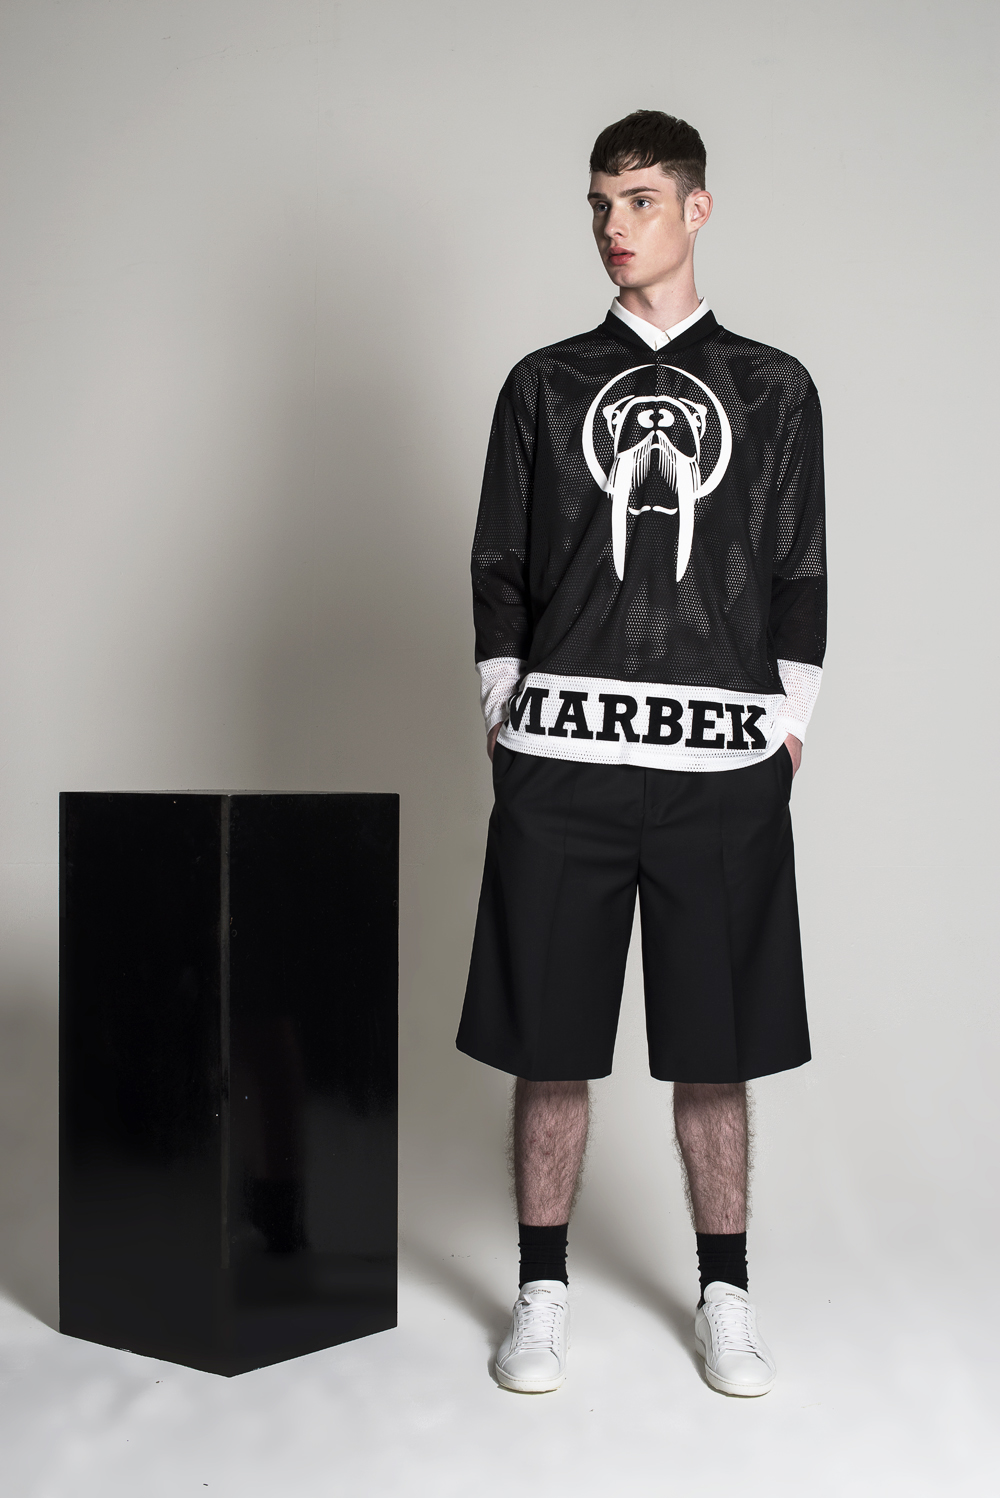 Marbek Launches Capsule Collection